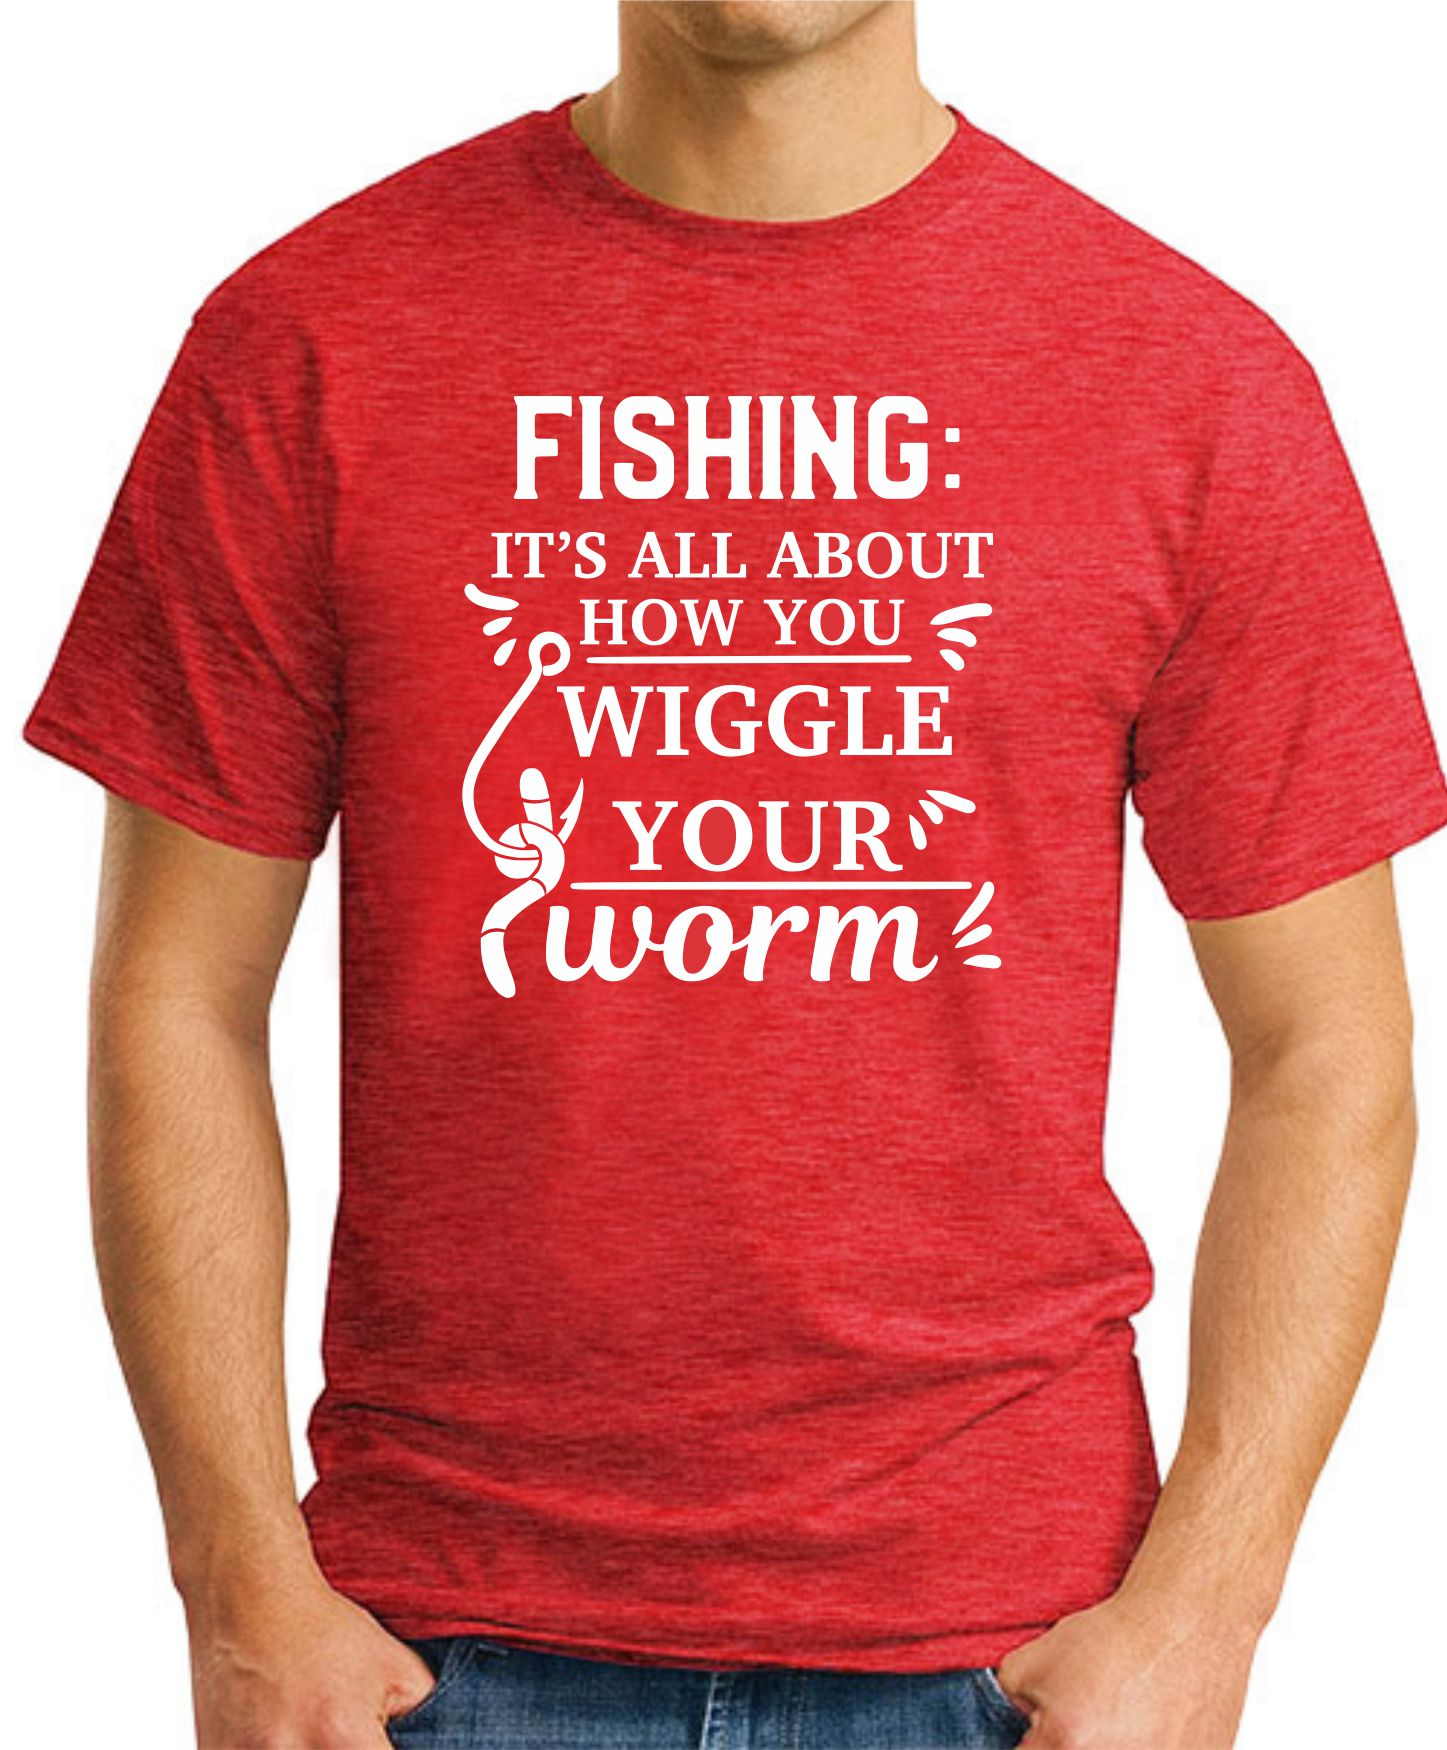 FISHING IT'S ALL ABOUT HOW YOU WIGGLE YOUR WORM red